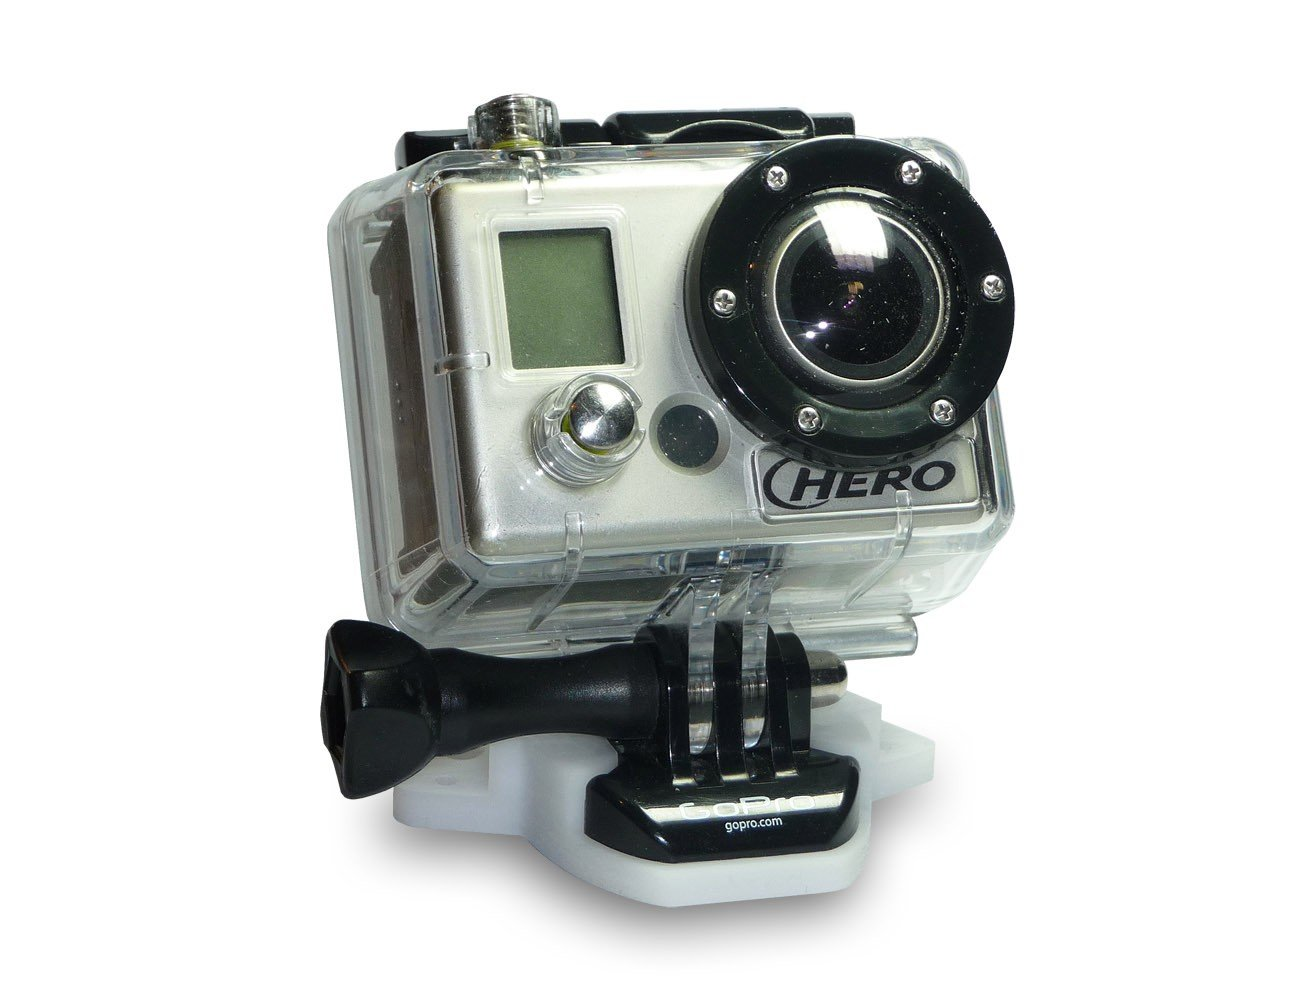 image of go pro camera